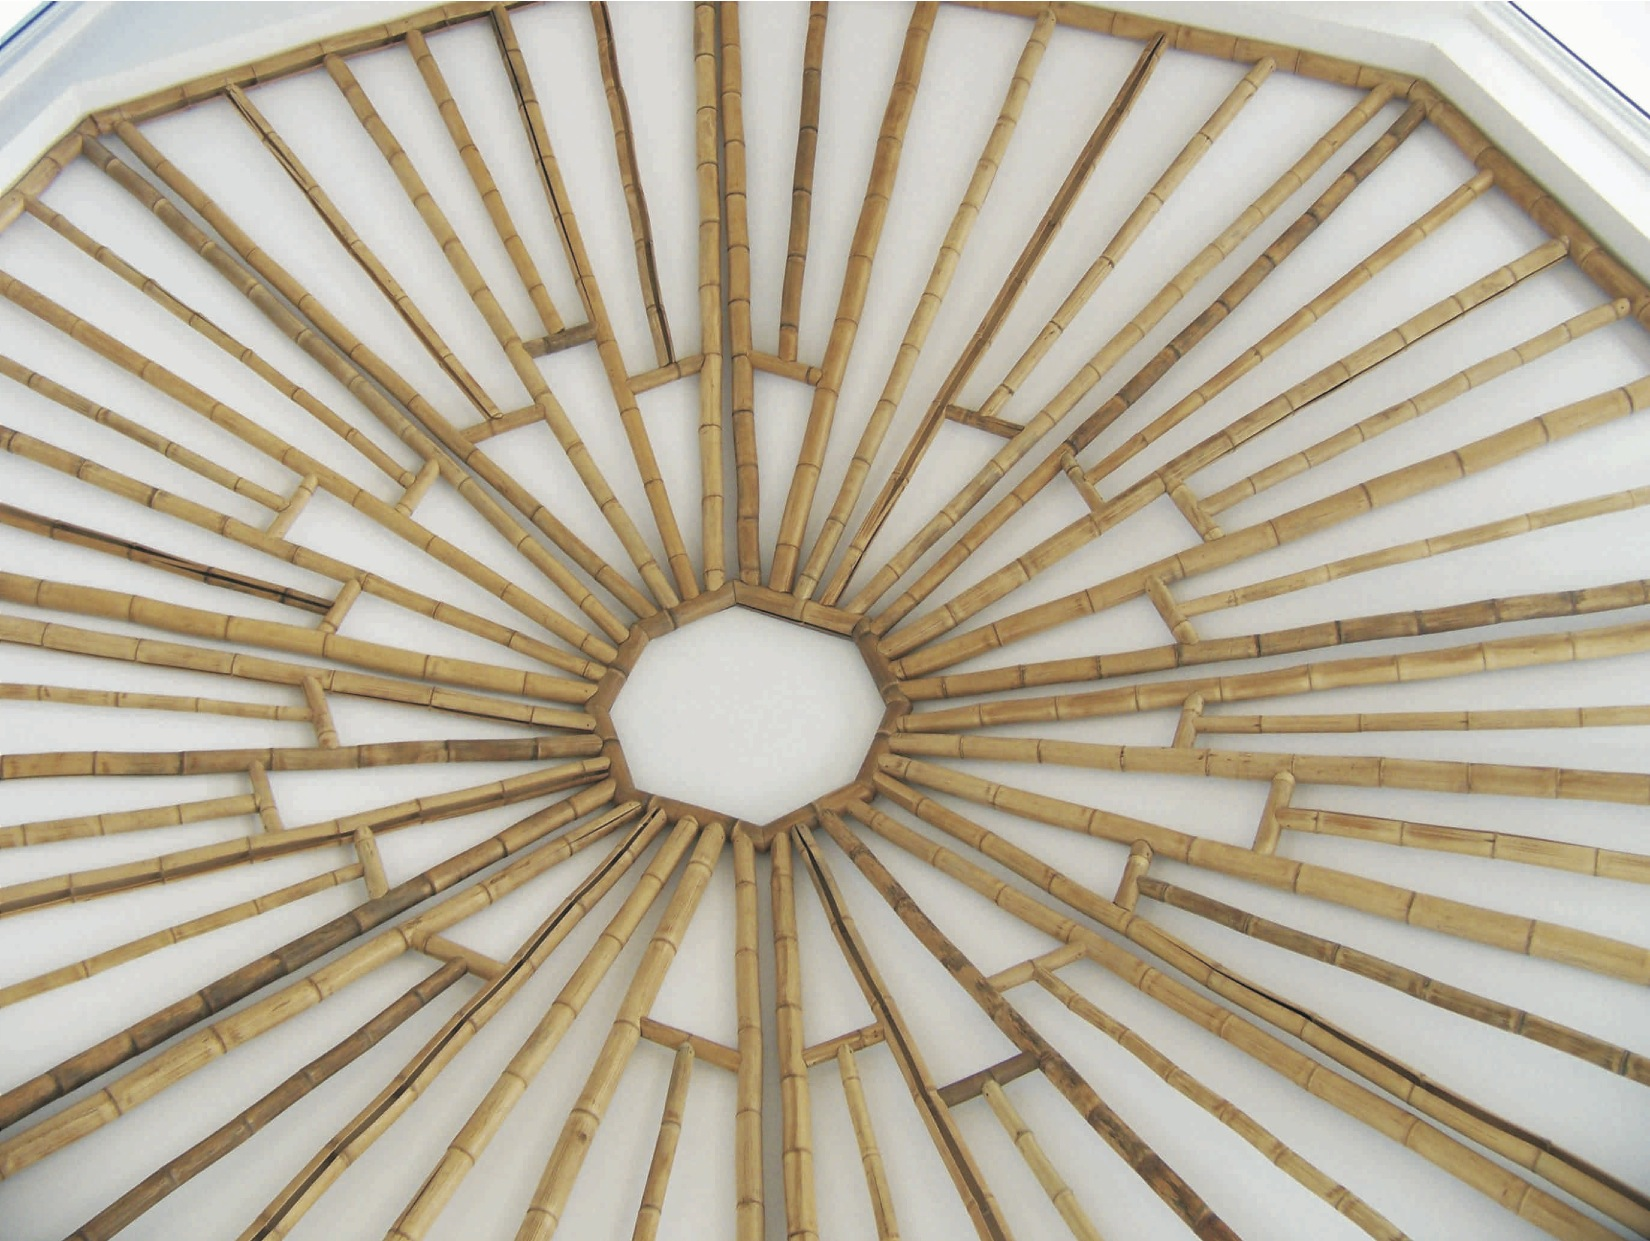 Decorative bamboo ceiling - Sailfish Point